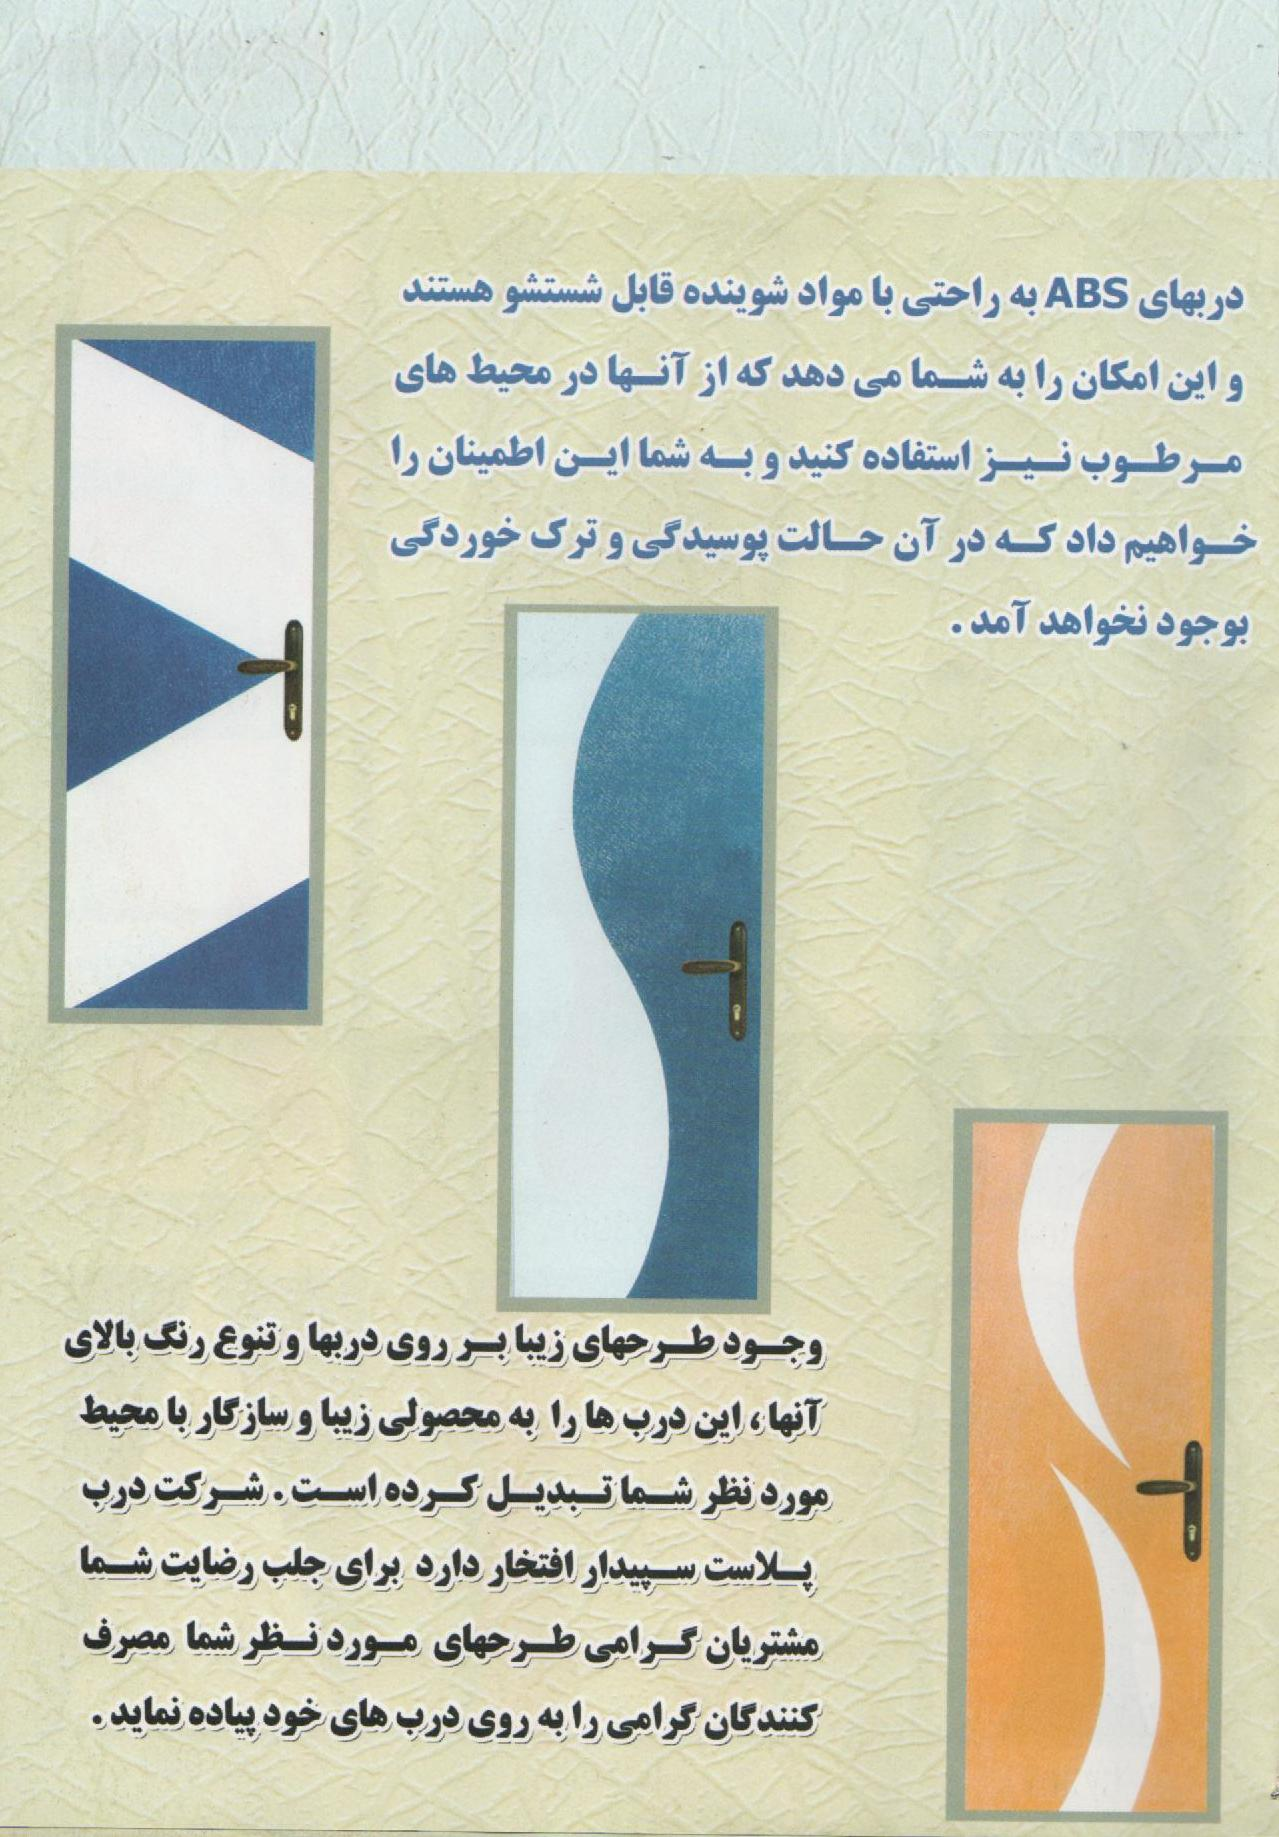 http://gdpars.persiangig.com/image/Shamsi%20003.jpg